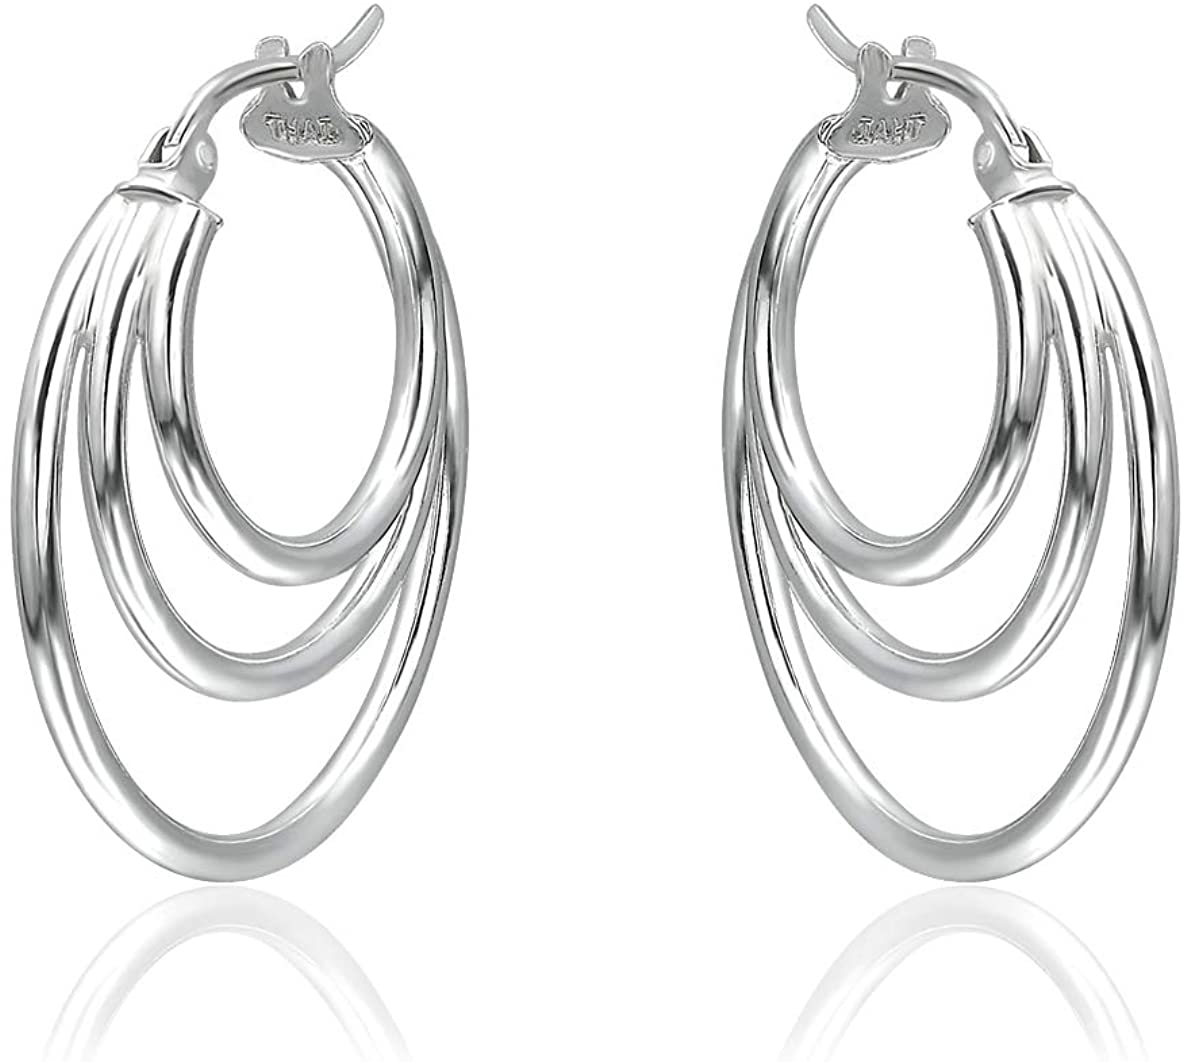 Sterling Silver Polished Finish Triple Circle Round-Tube Hoop Earrings for Women Teen Girls, 25mm Diameter.